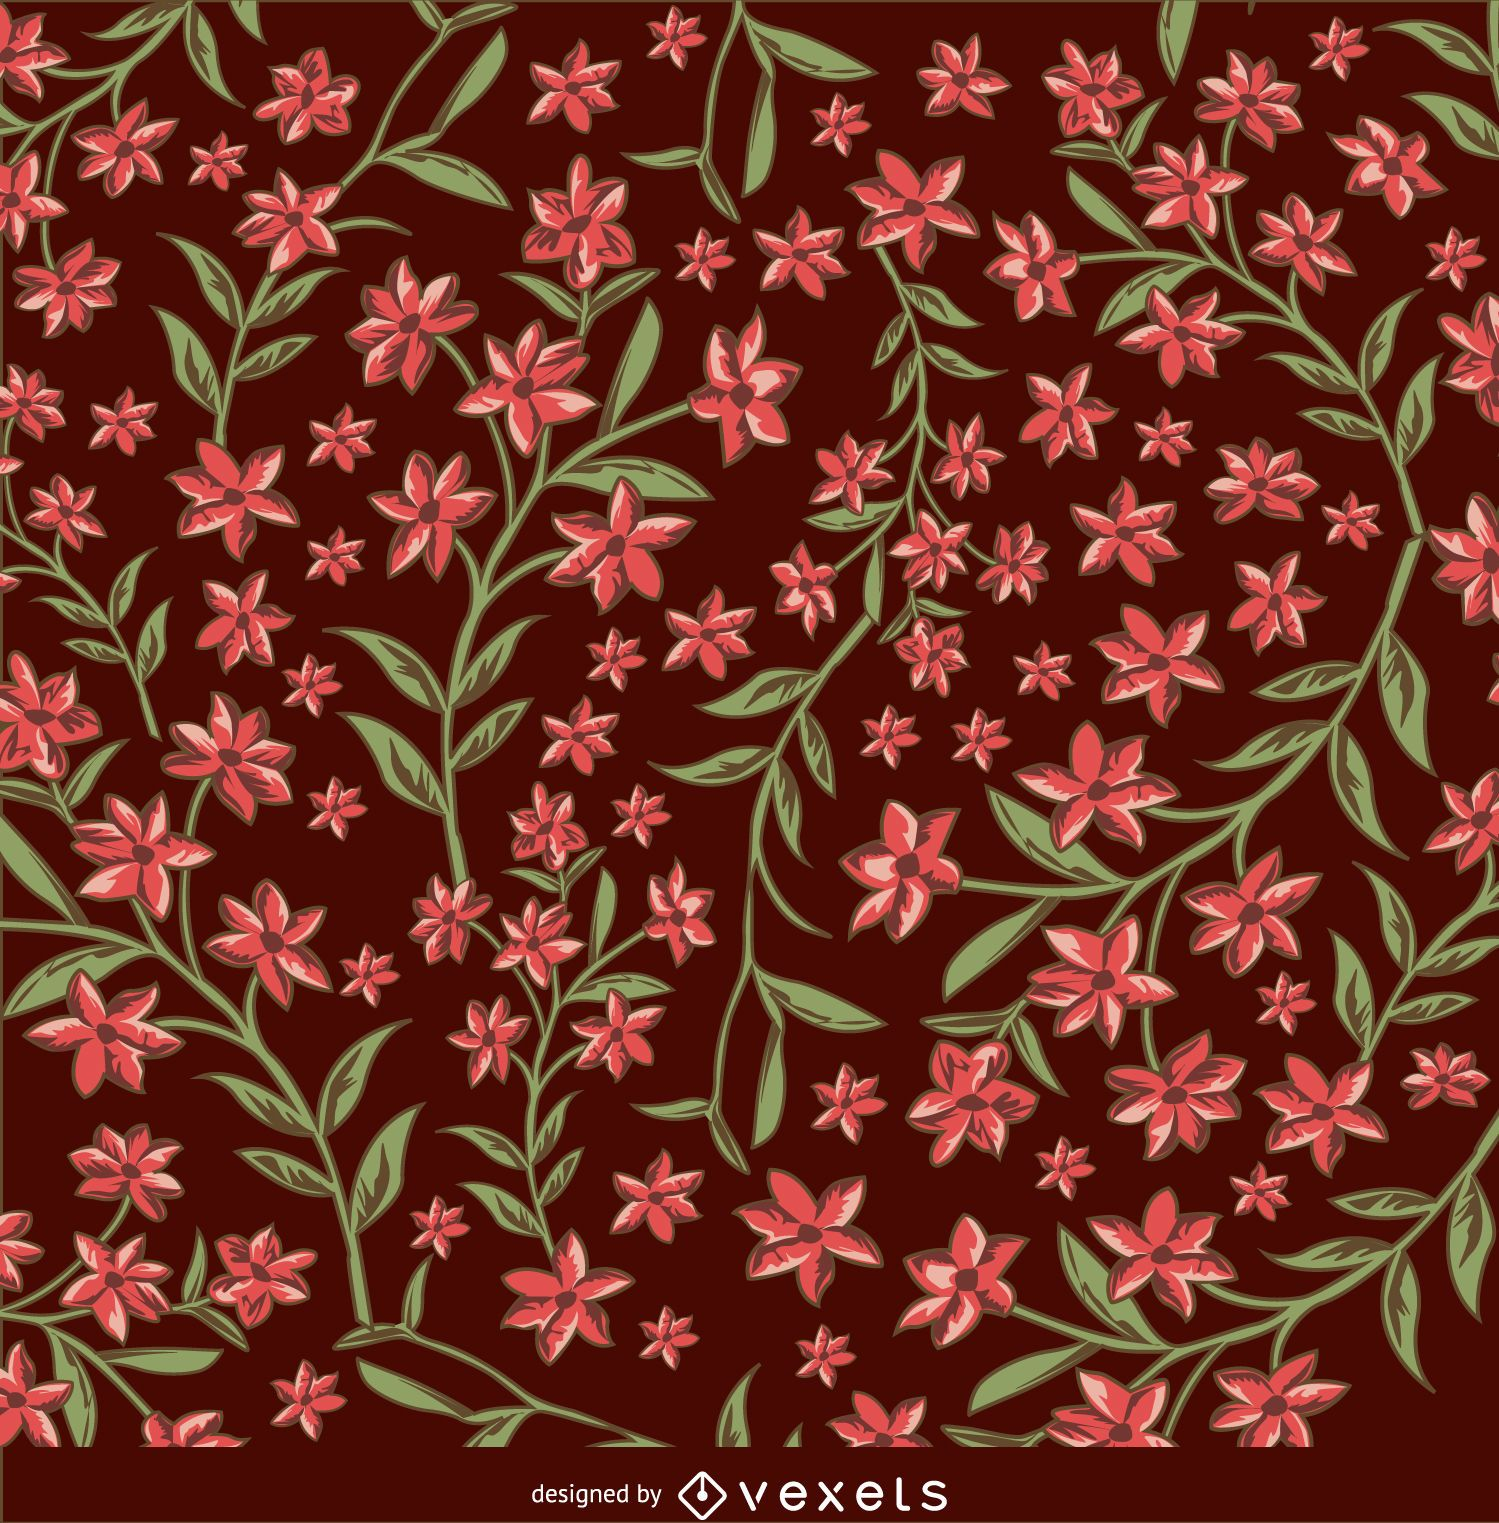 Floral brown and red background